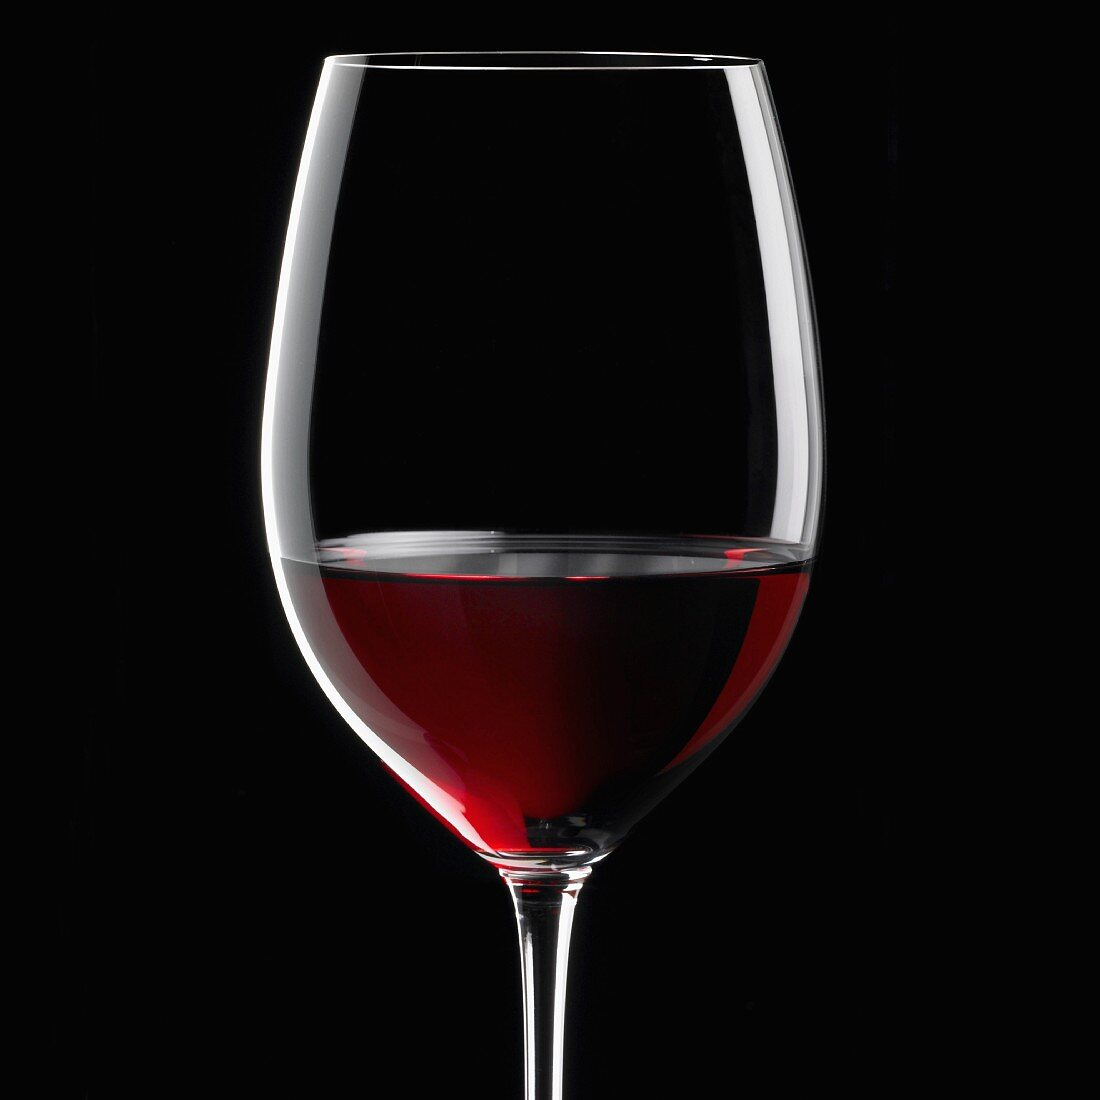 Glass of red wine, Italy, Europe